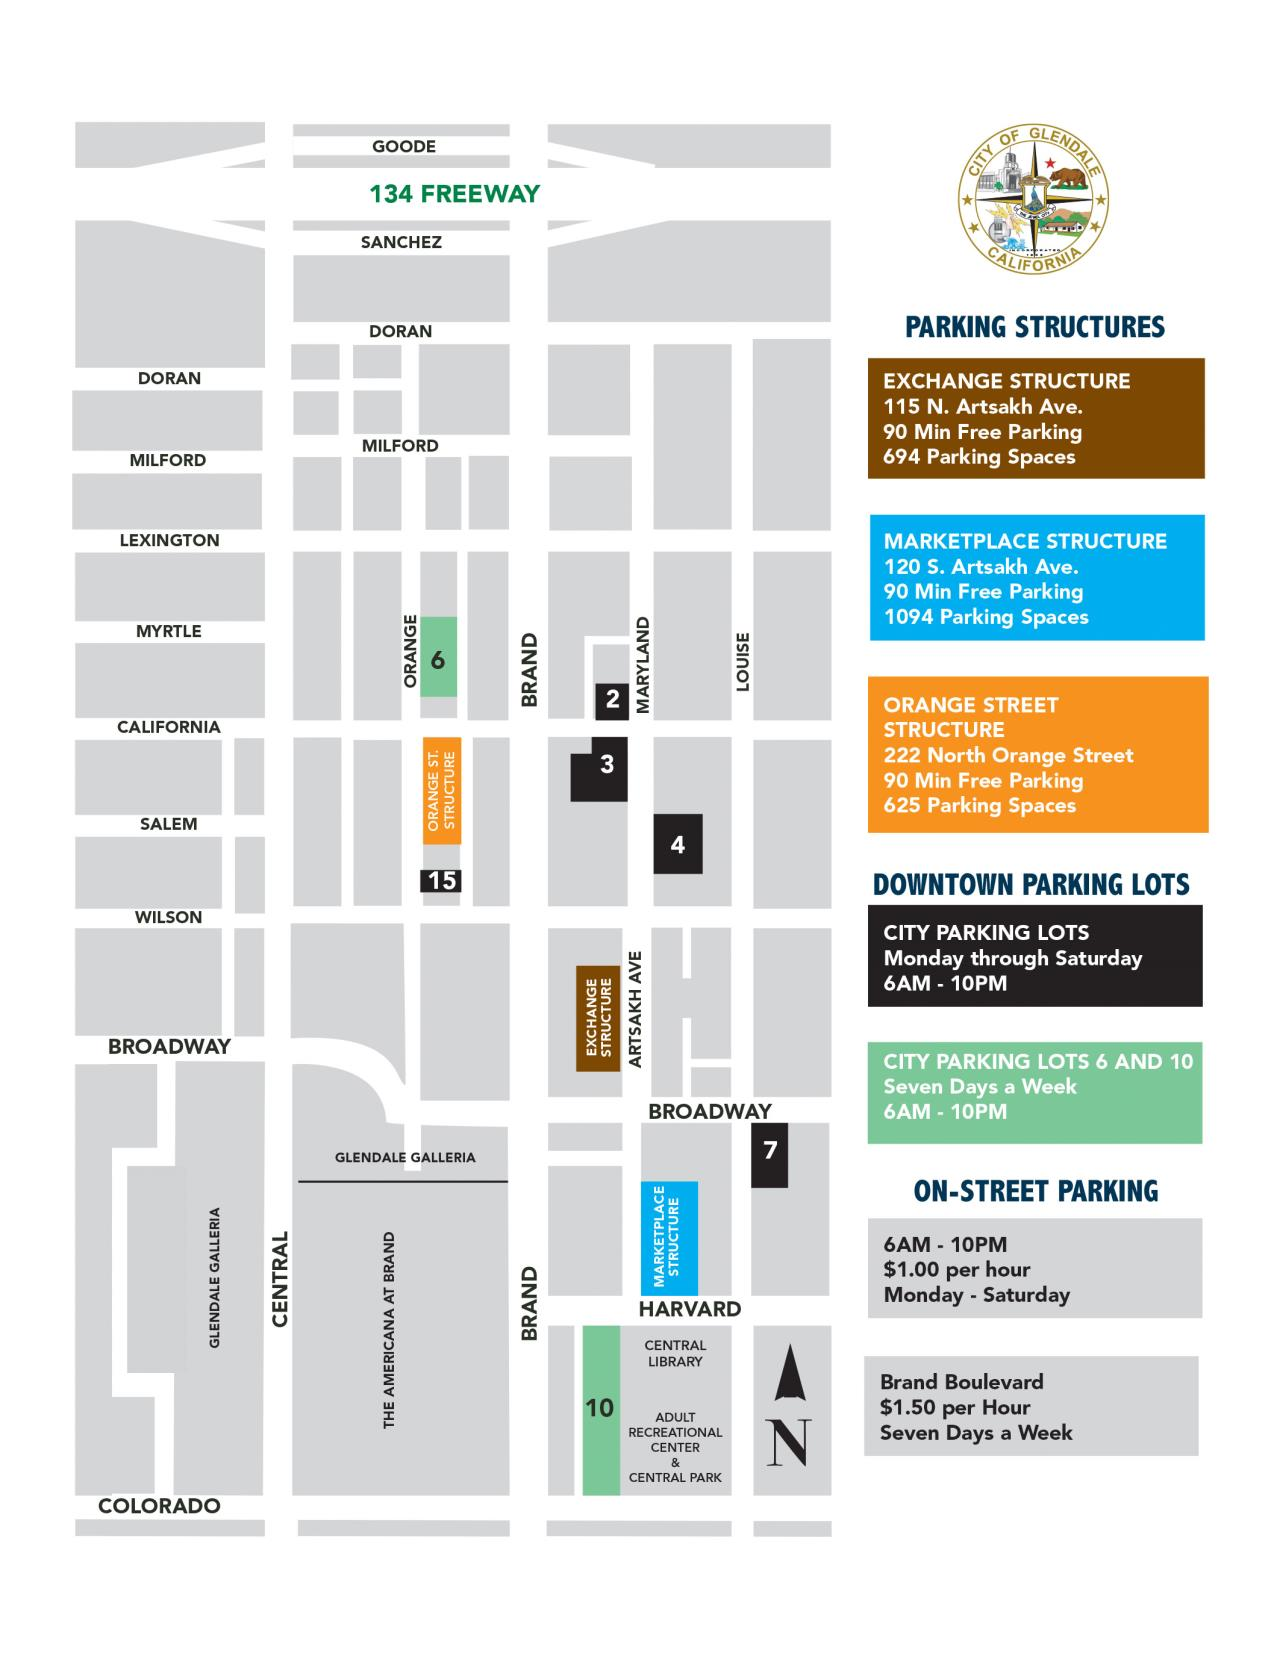 Downtown Parking Pricing & Hours | City of Glendale, CA